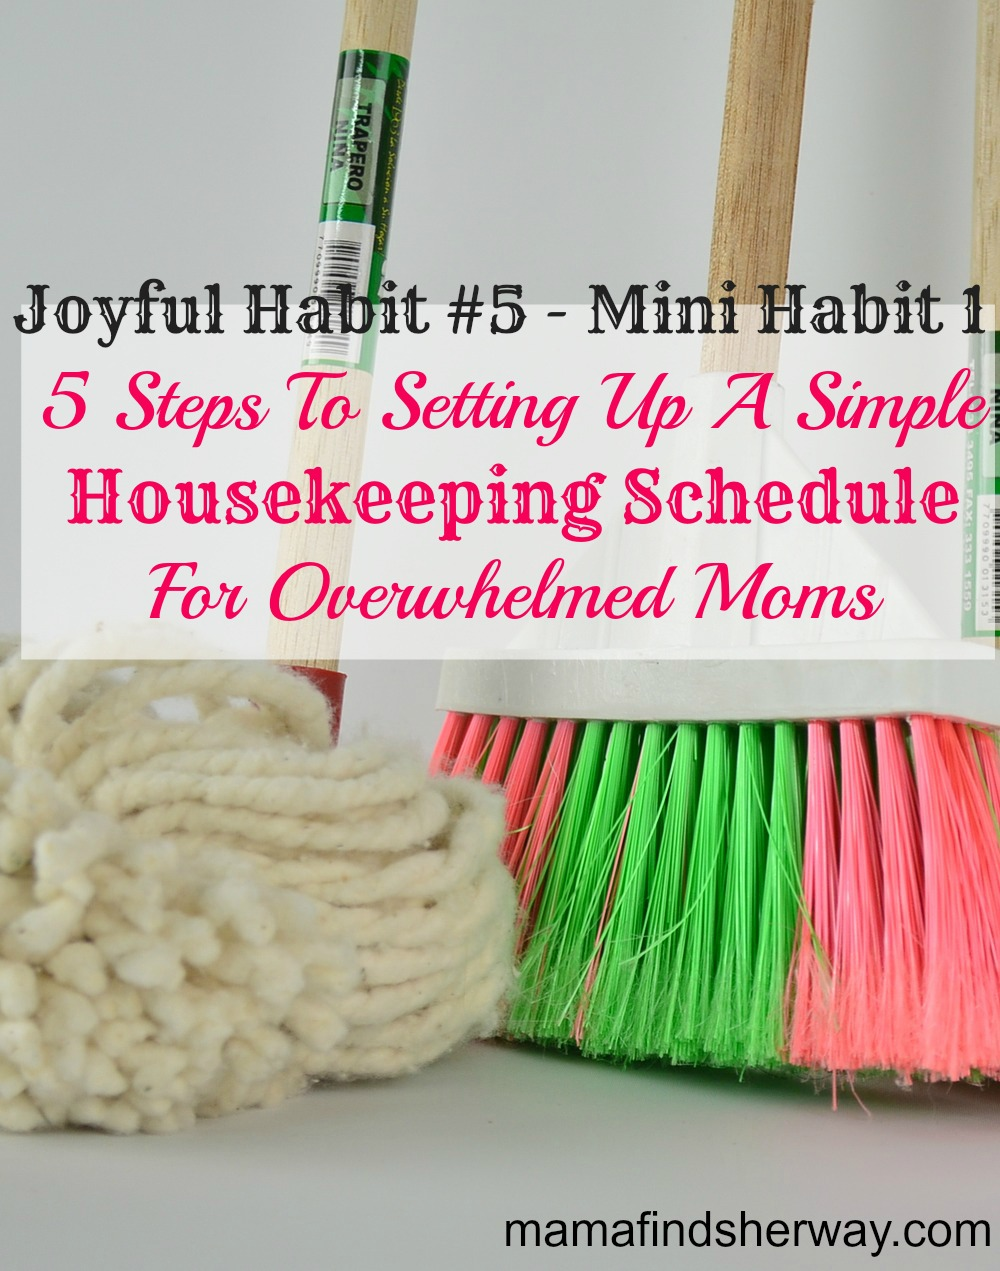 5 steps for setting up a simple housekeeping schedule for overwhelmed moms